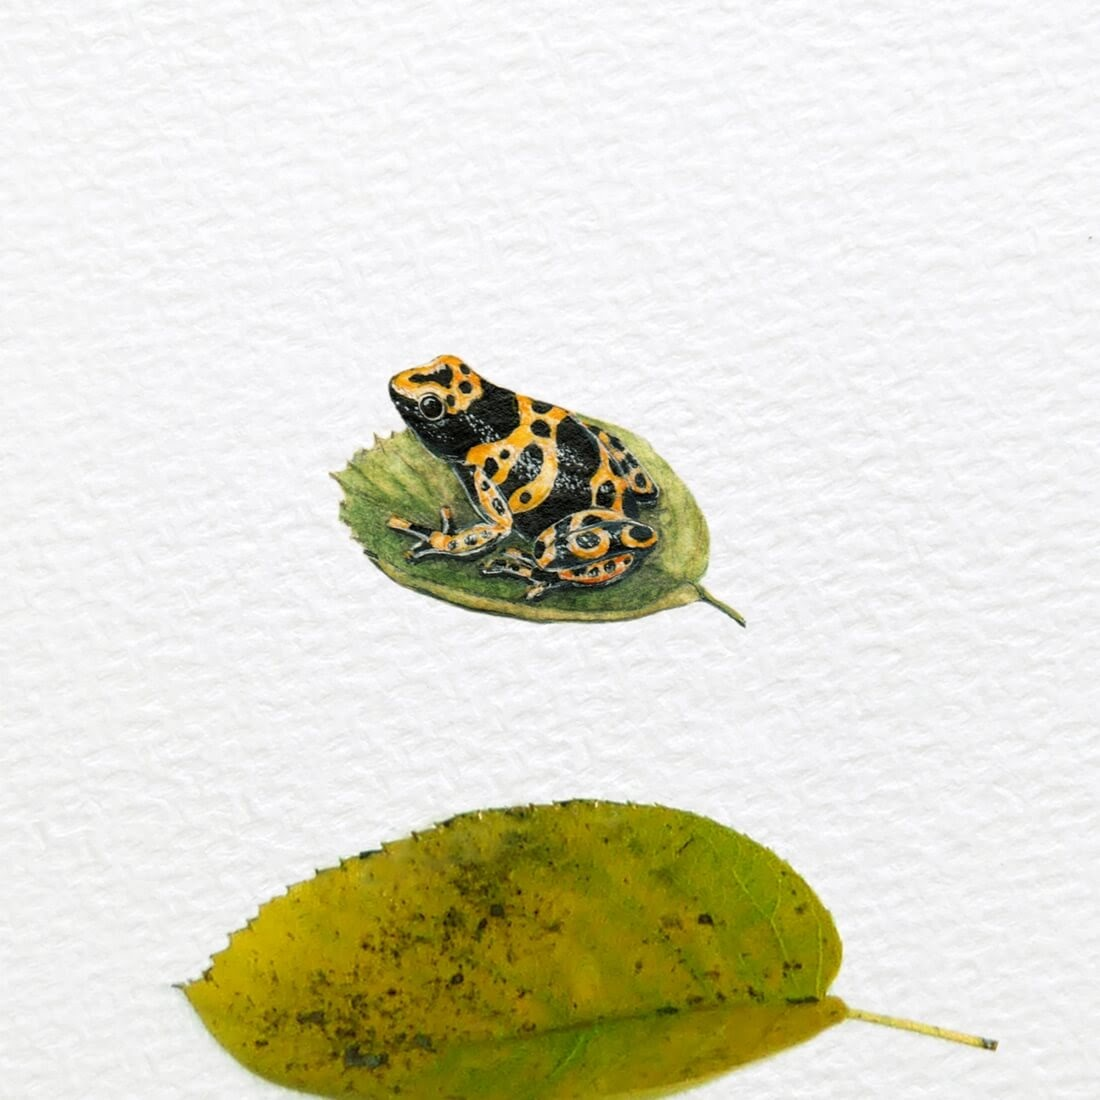 08-Yellow-Banded-Poison-Dart-Frog-Frank Holzenburg Miniature Drawings and Paintings of Animals-www-designstack-co